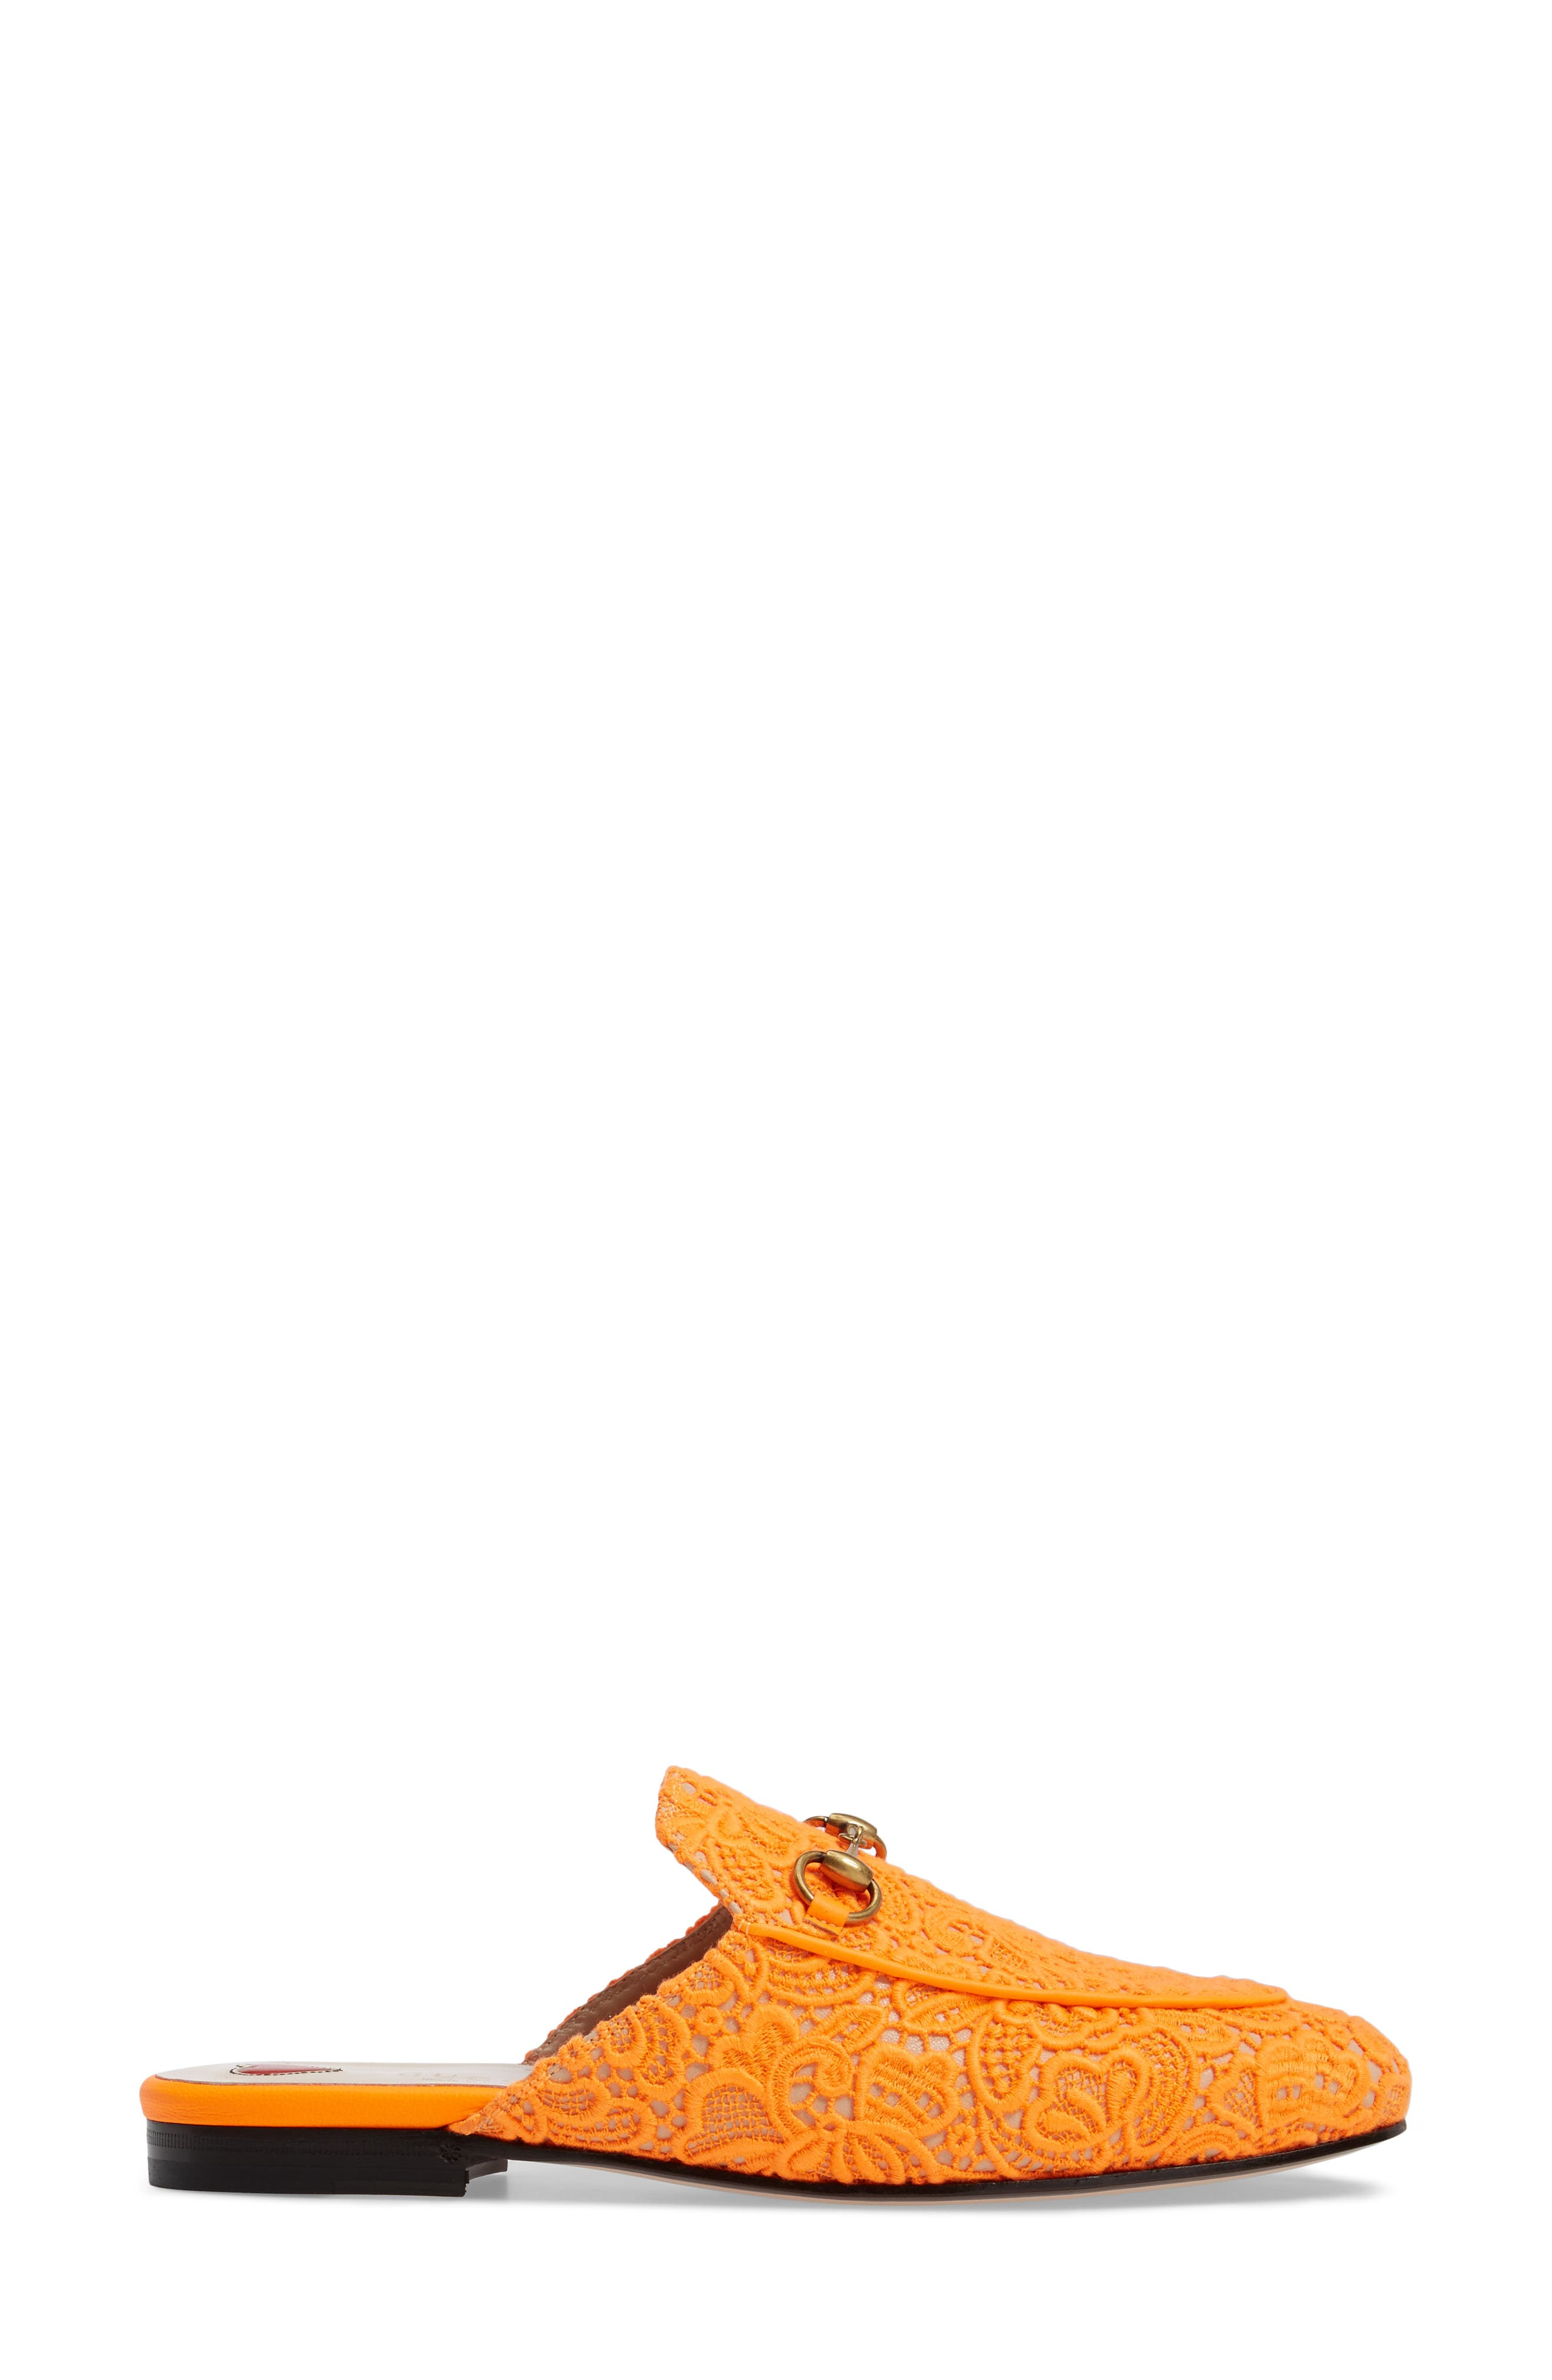 Princetown Loafer Mule,                             Alternate thumbnail 3, color,                             800